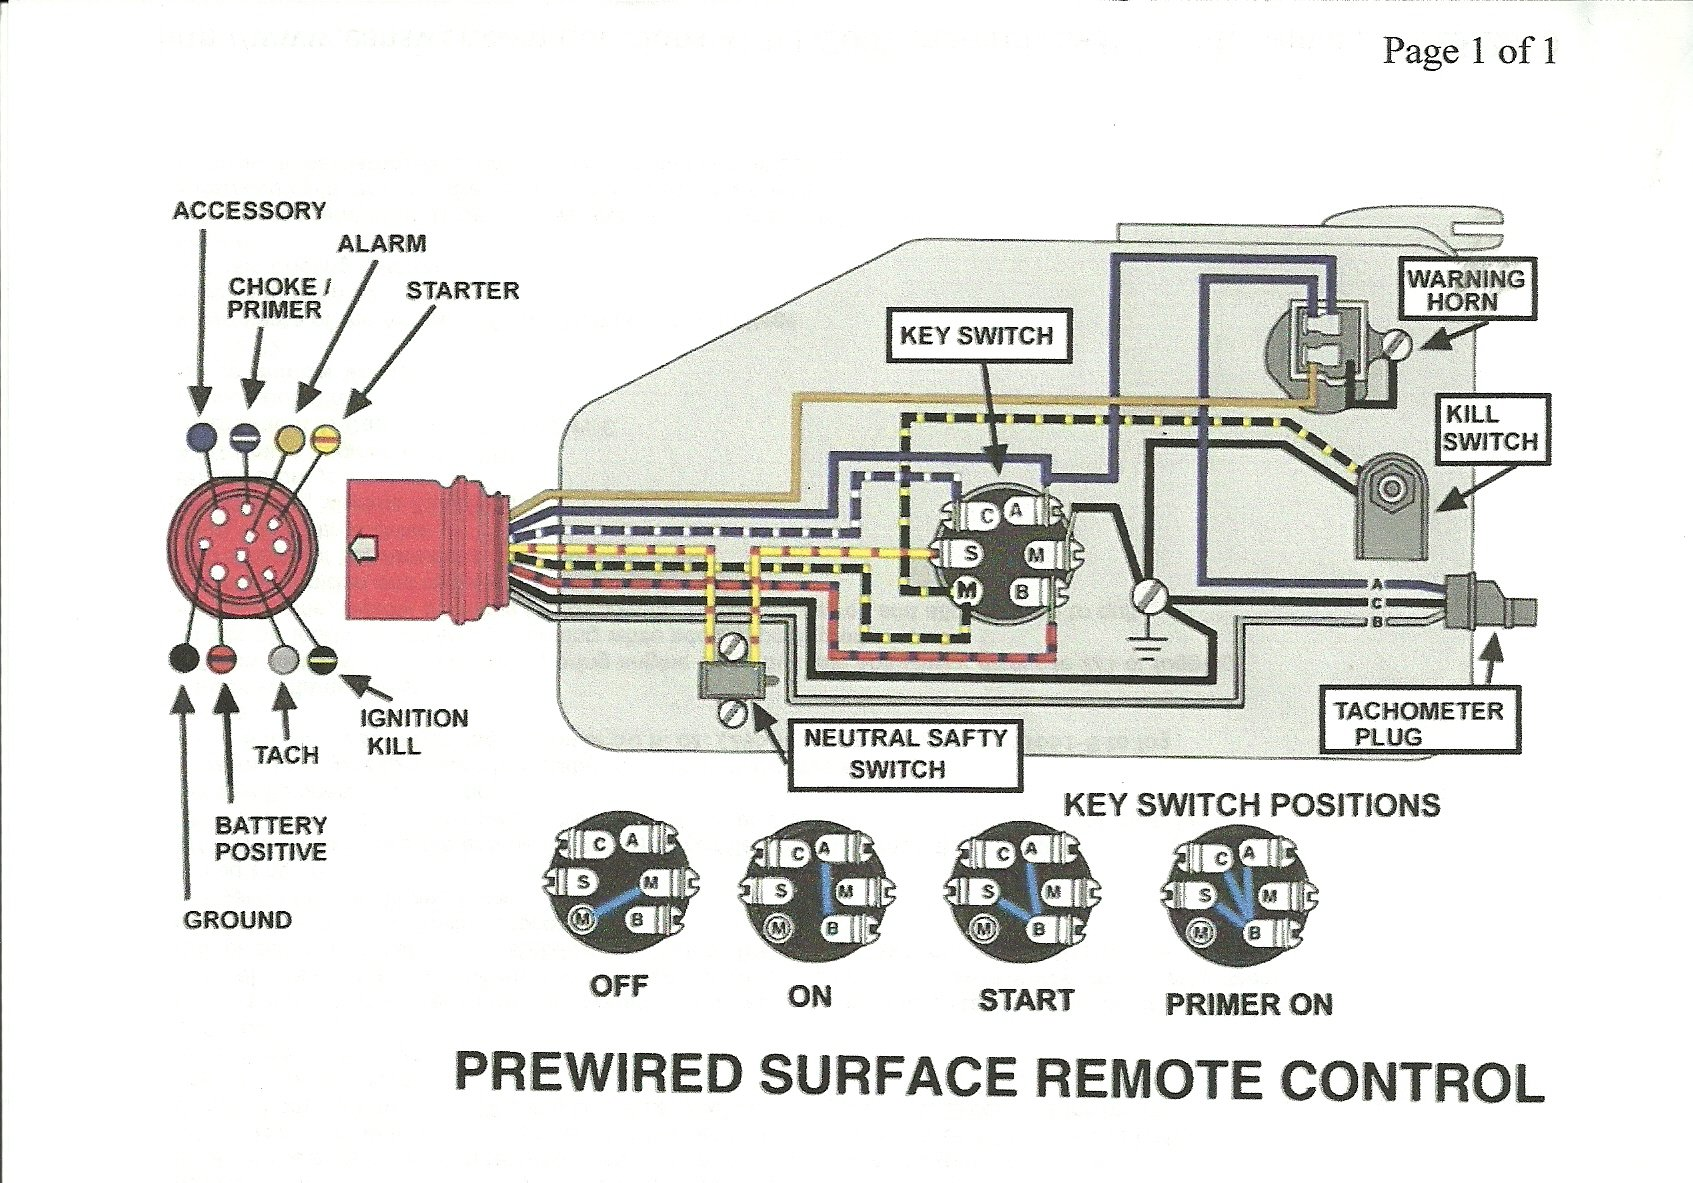 2011 07 20_142123_control_box_key diagrams 739591 yamaha outboard wiring harness diagram yamaha yamaha key switch wiring diagram at bayanpartner.co